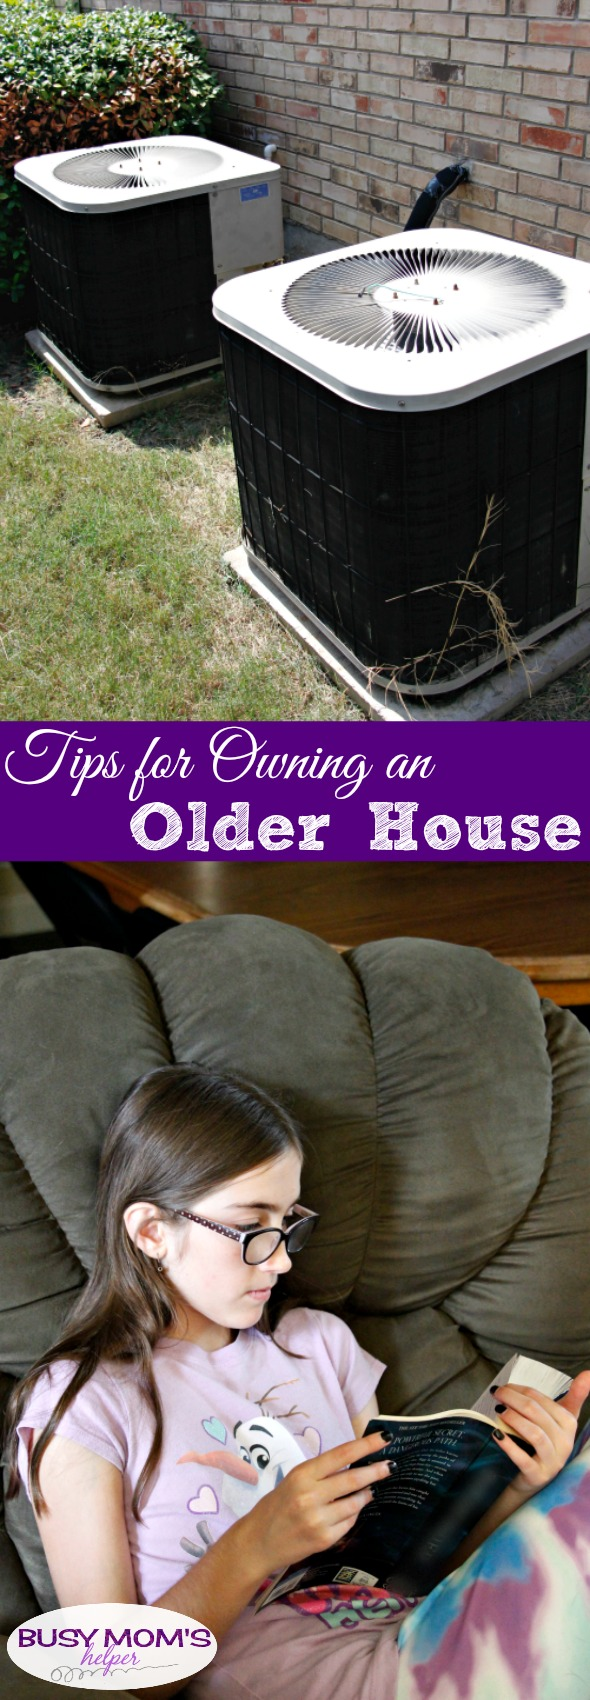 Tips for Owning an Older House AD #OneHourPartner